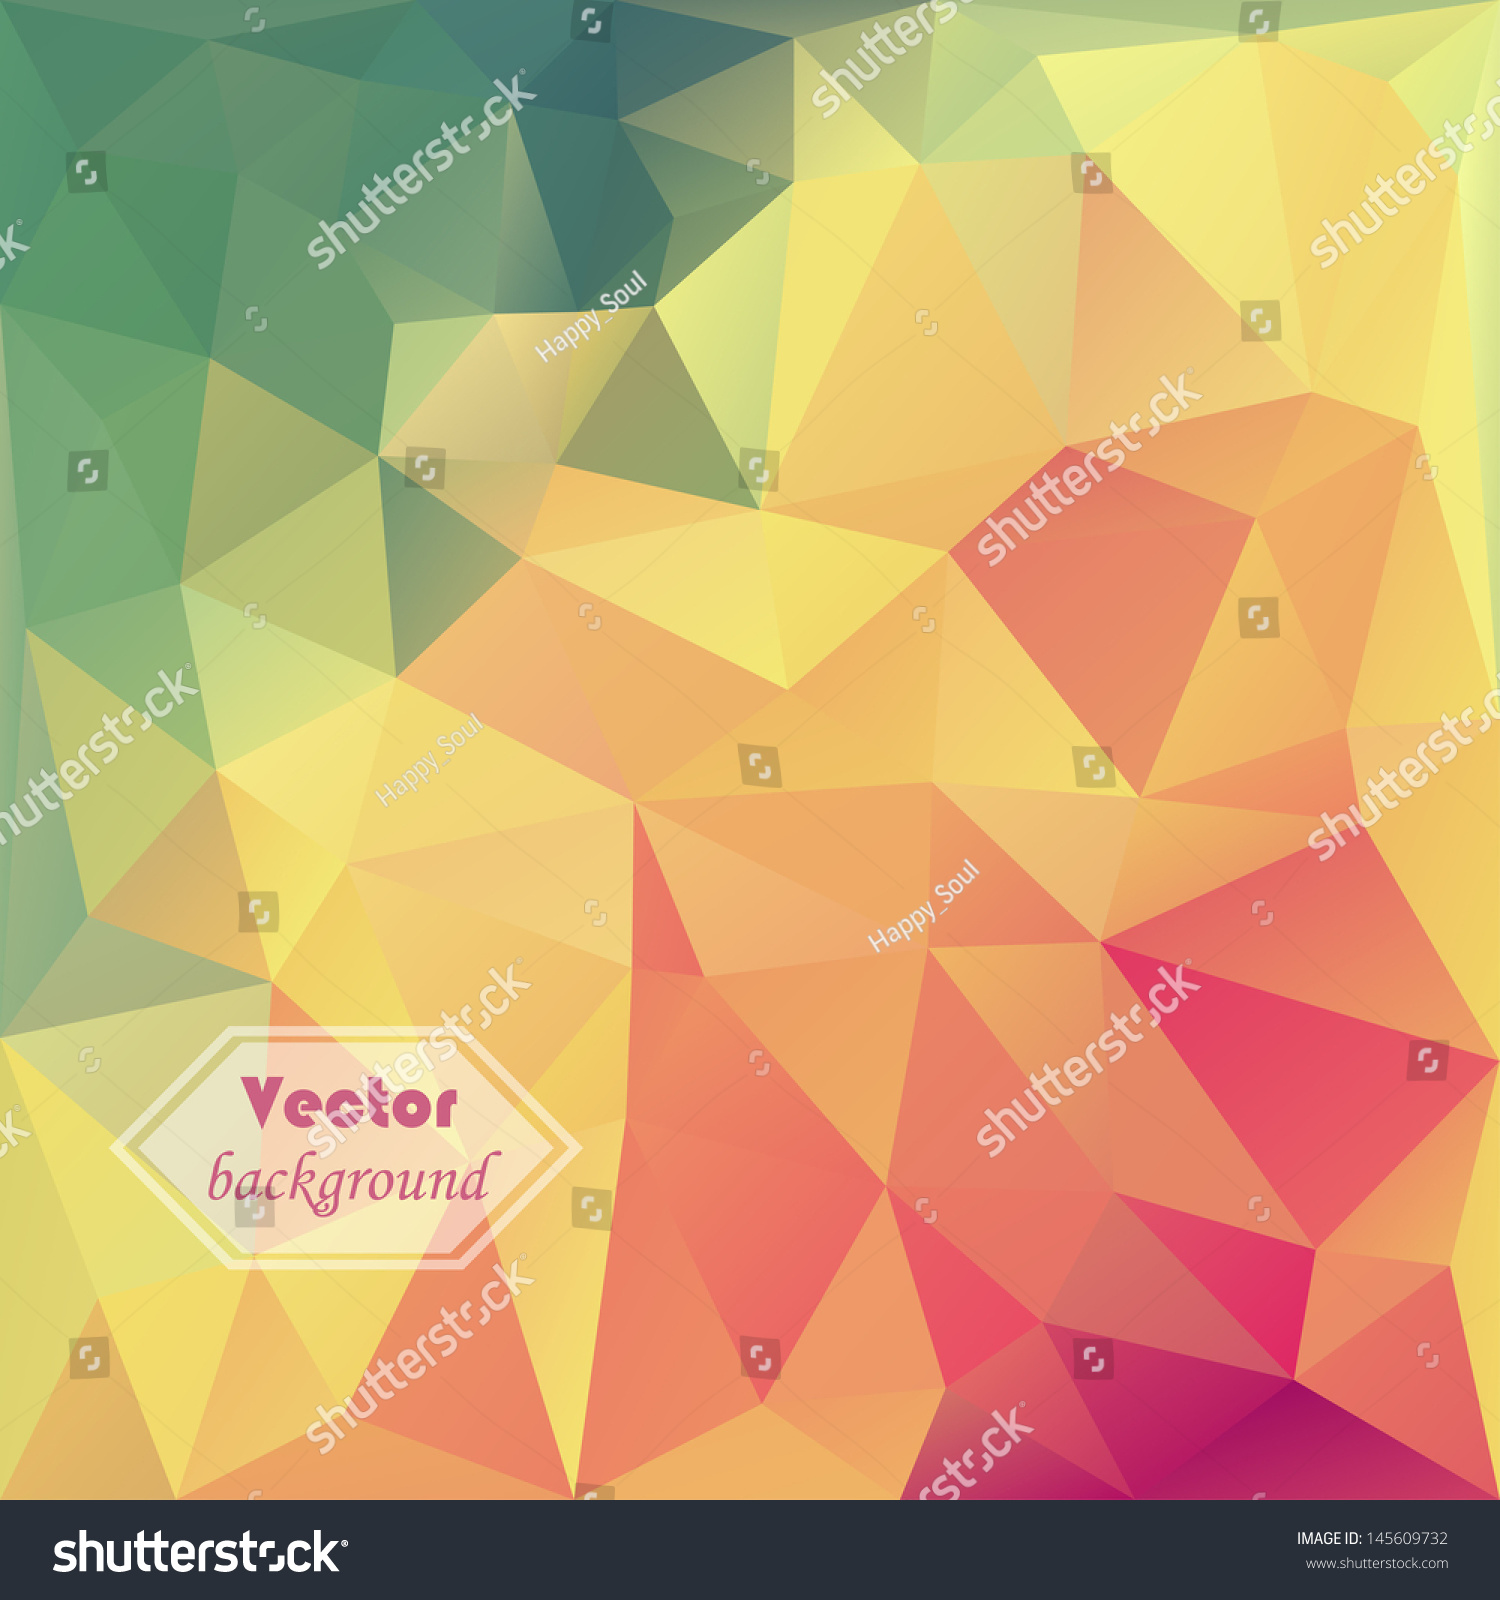 Triangle Pattern Free Vector Art  13977 Free Downloads